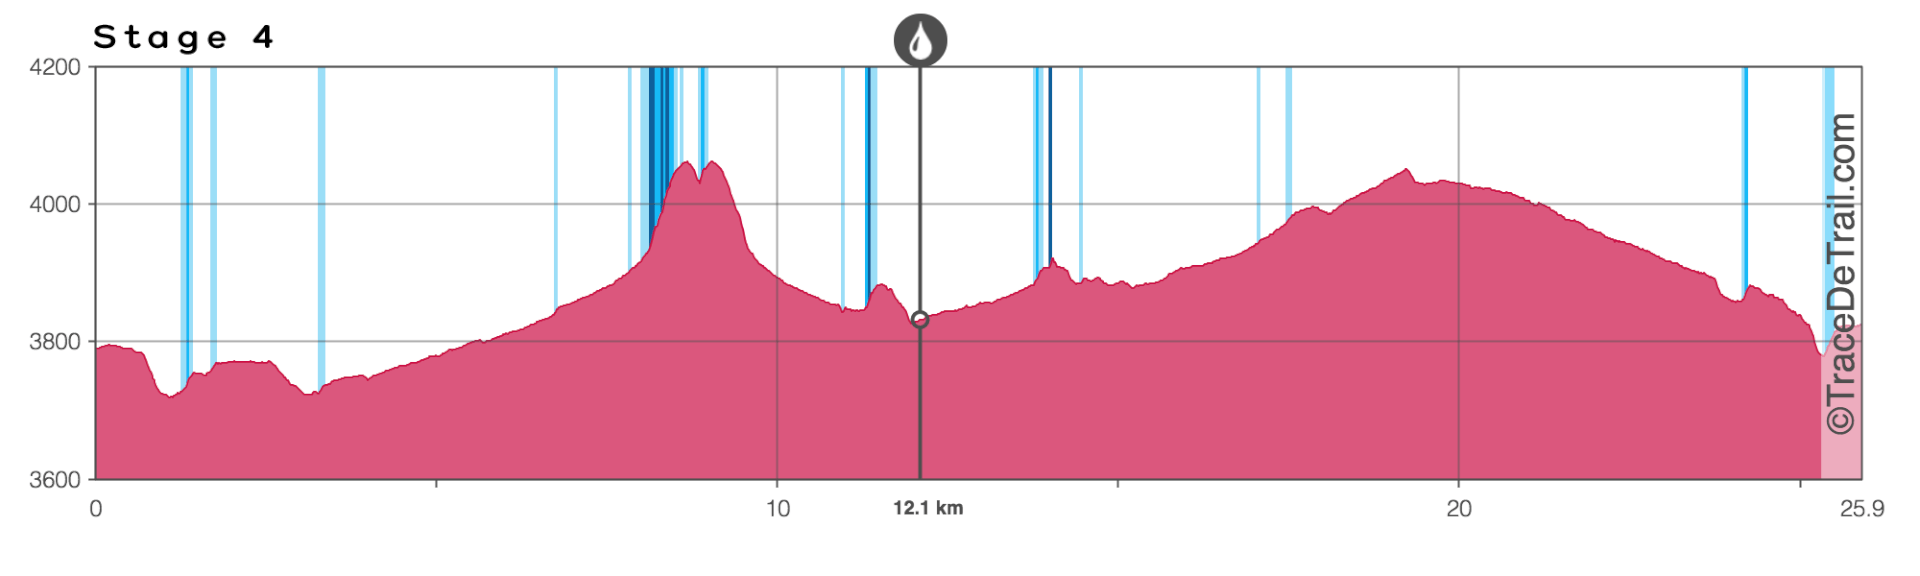 Stage 4 elevation profile chart